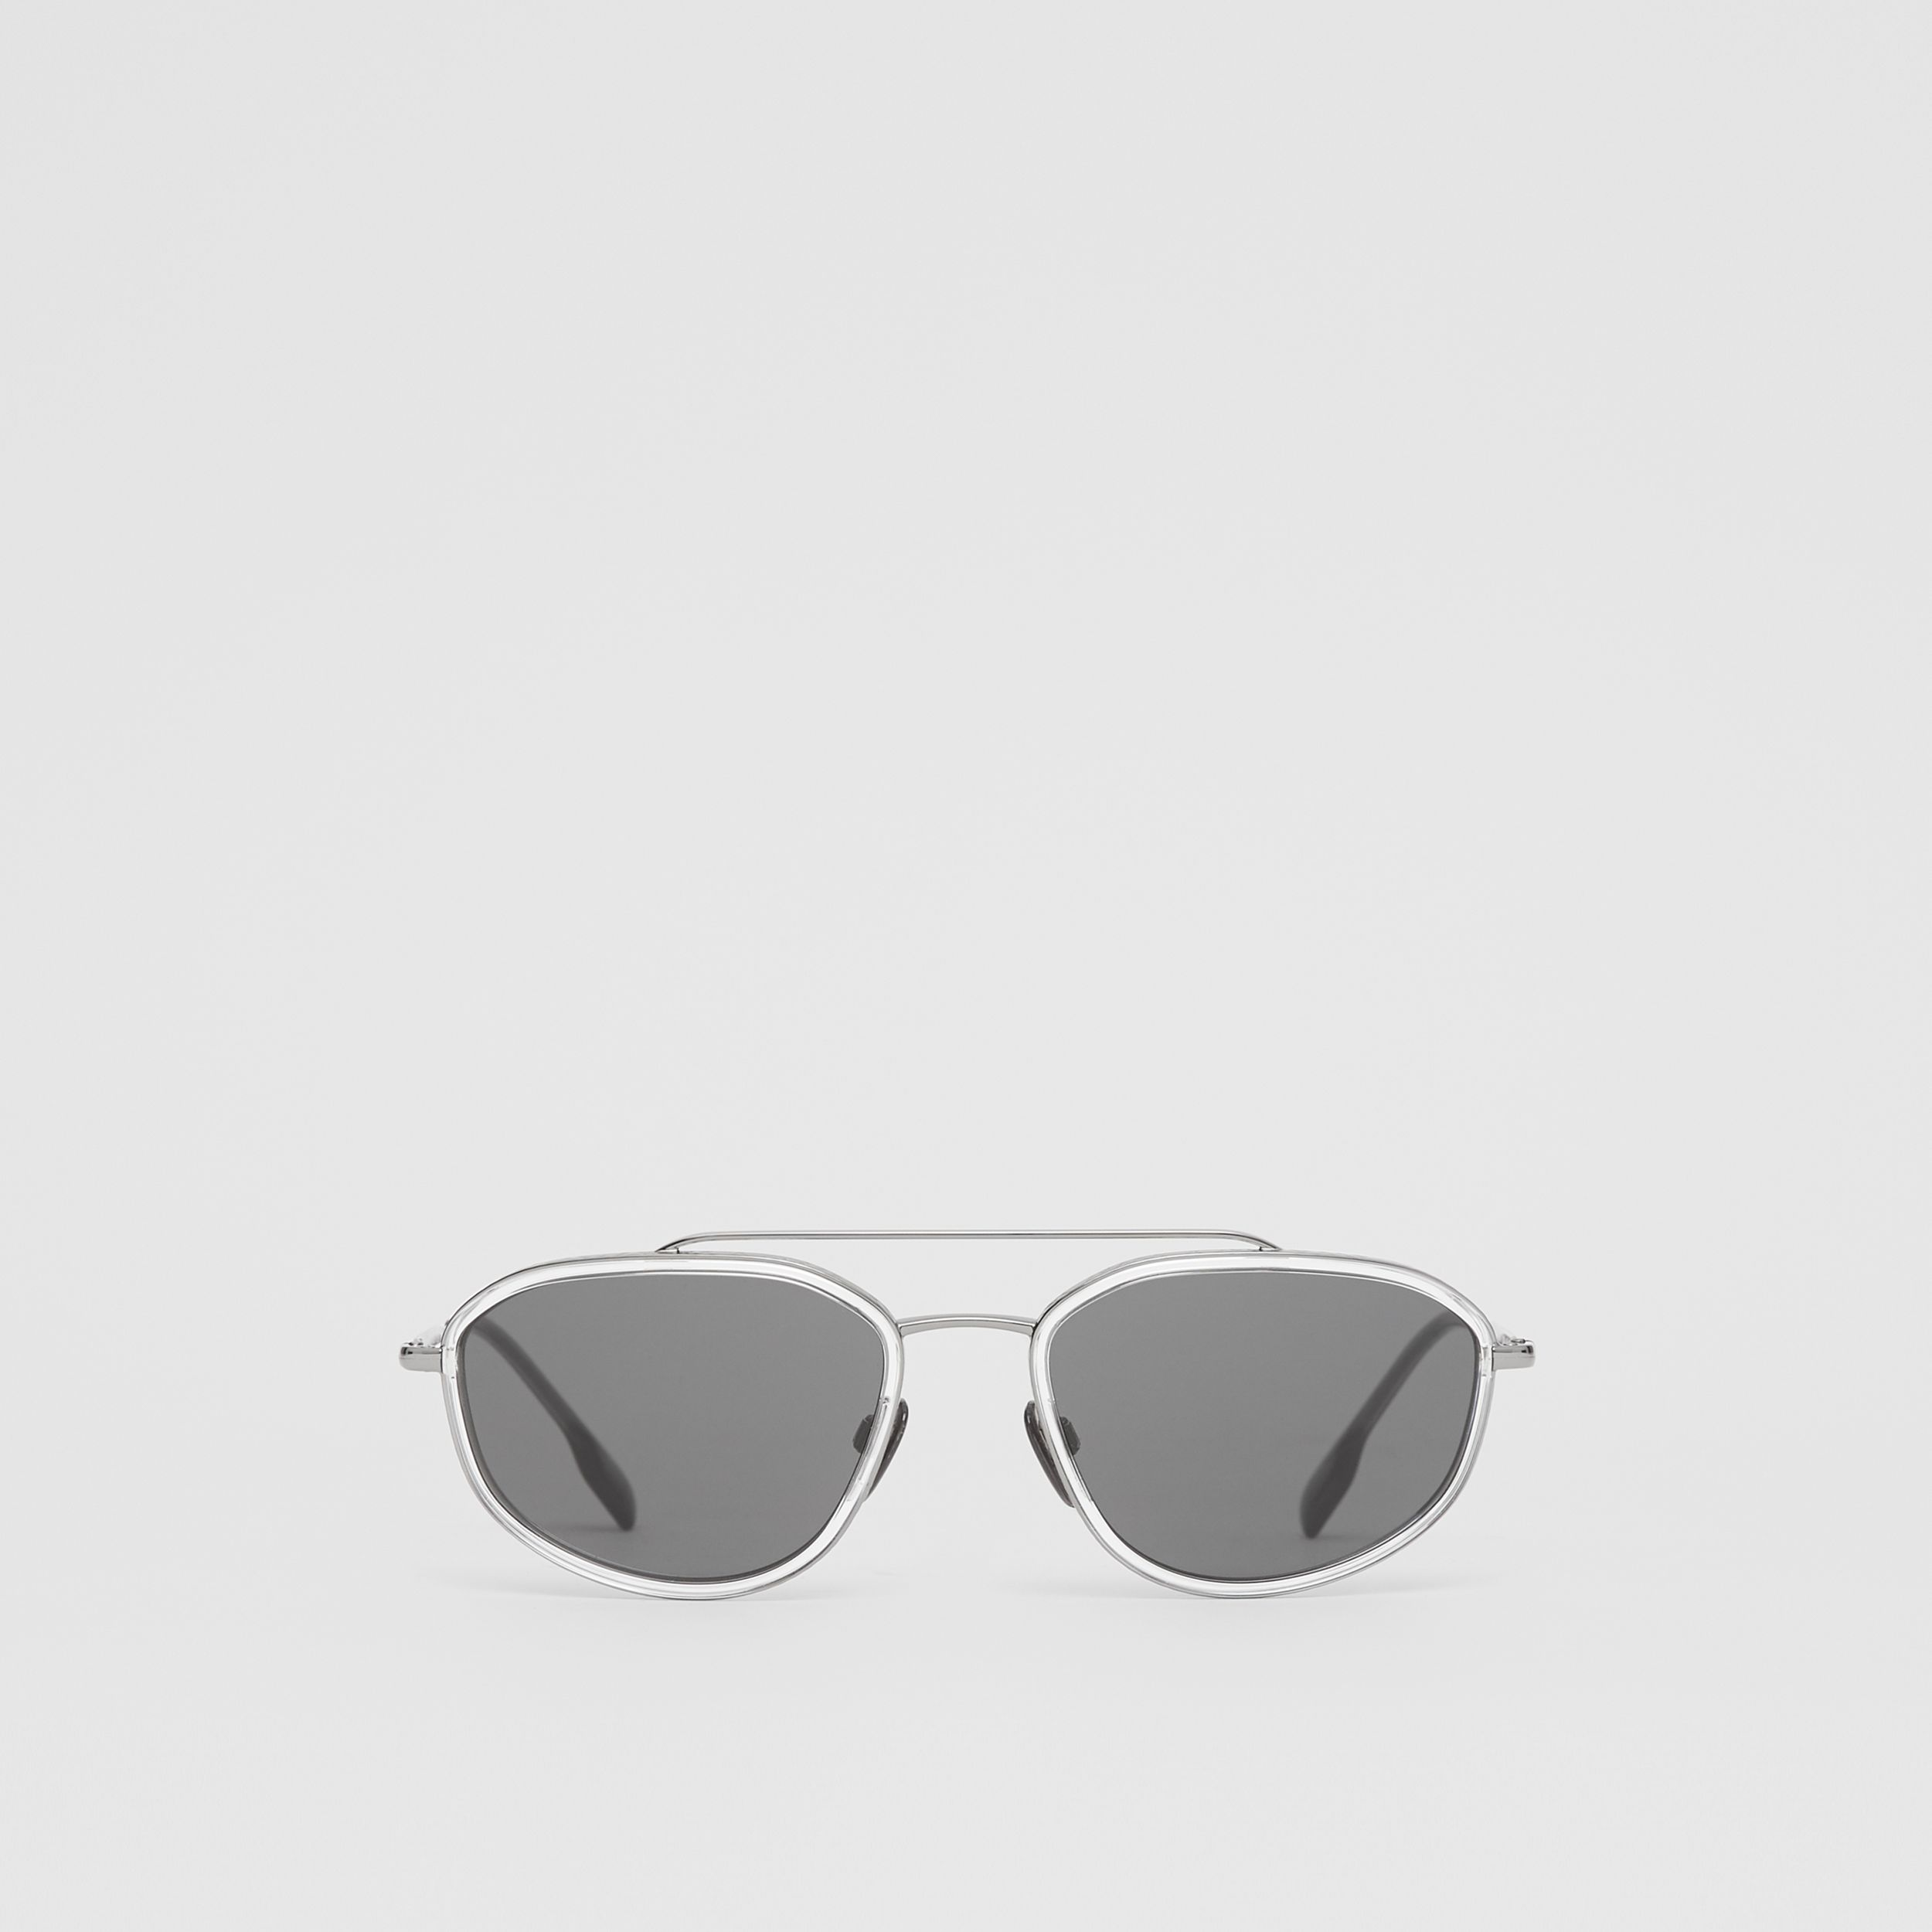 Geometric Navigator Sunglasses in Gunmetal Grey - Men | Burberry - 1